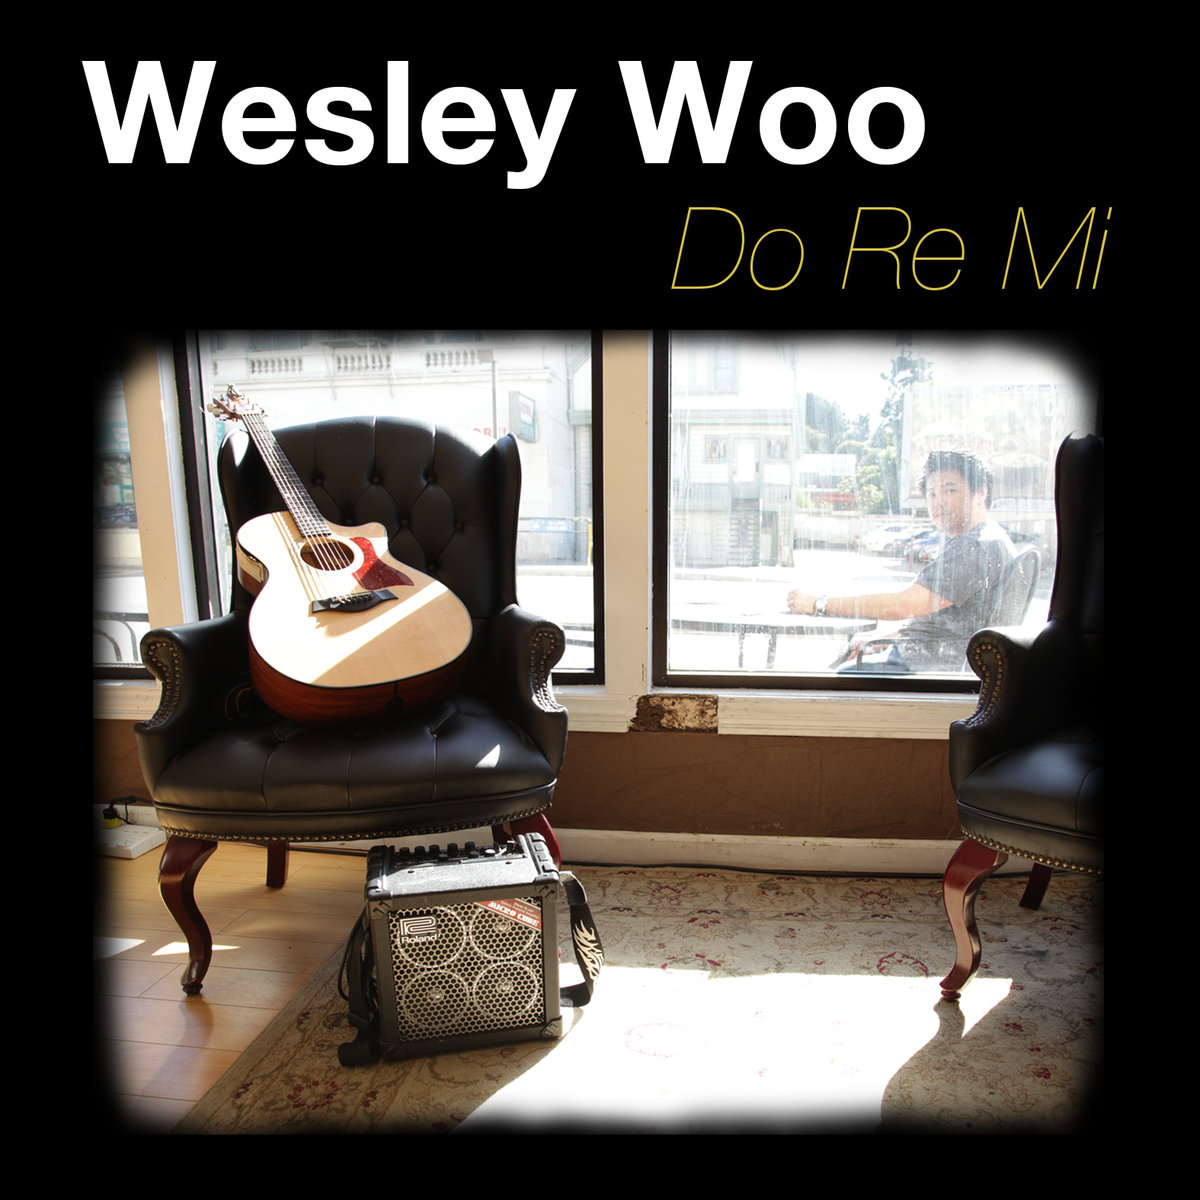 Wesley Woo - Lost in You @ 'Do Re Mi' album (11th ave records, 11th avenue records)